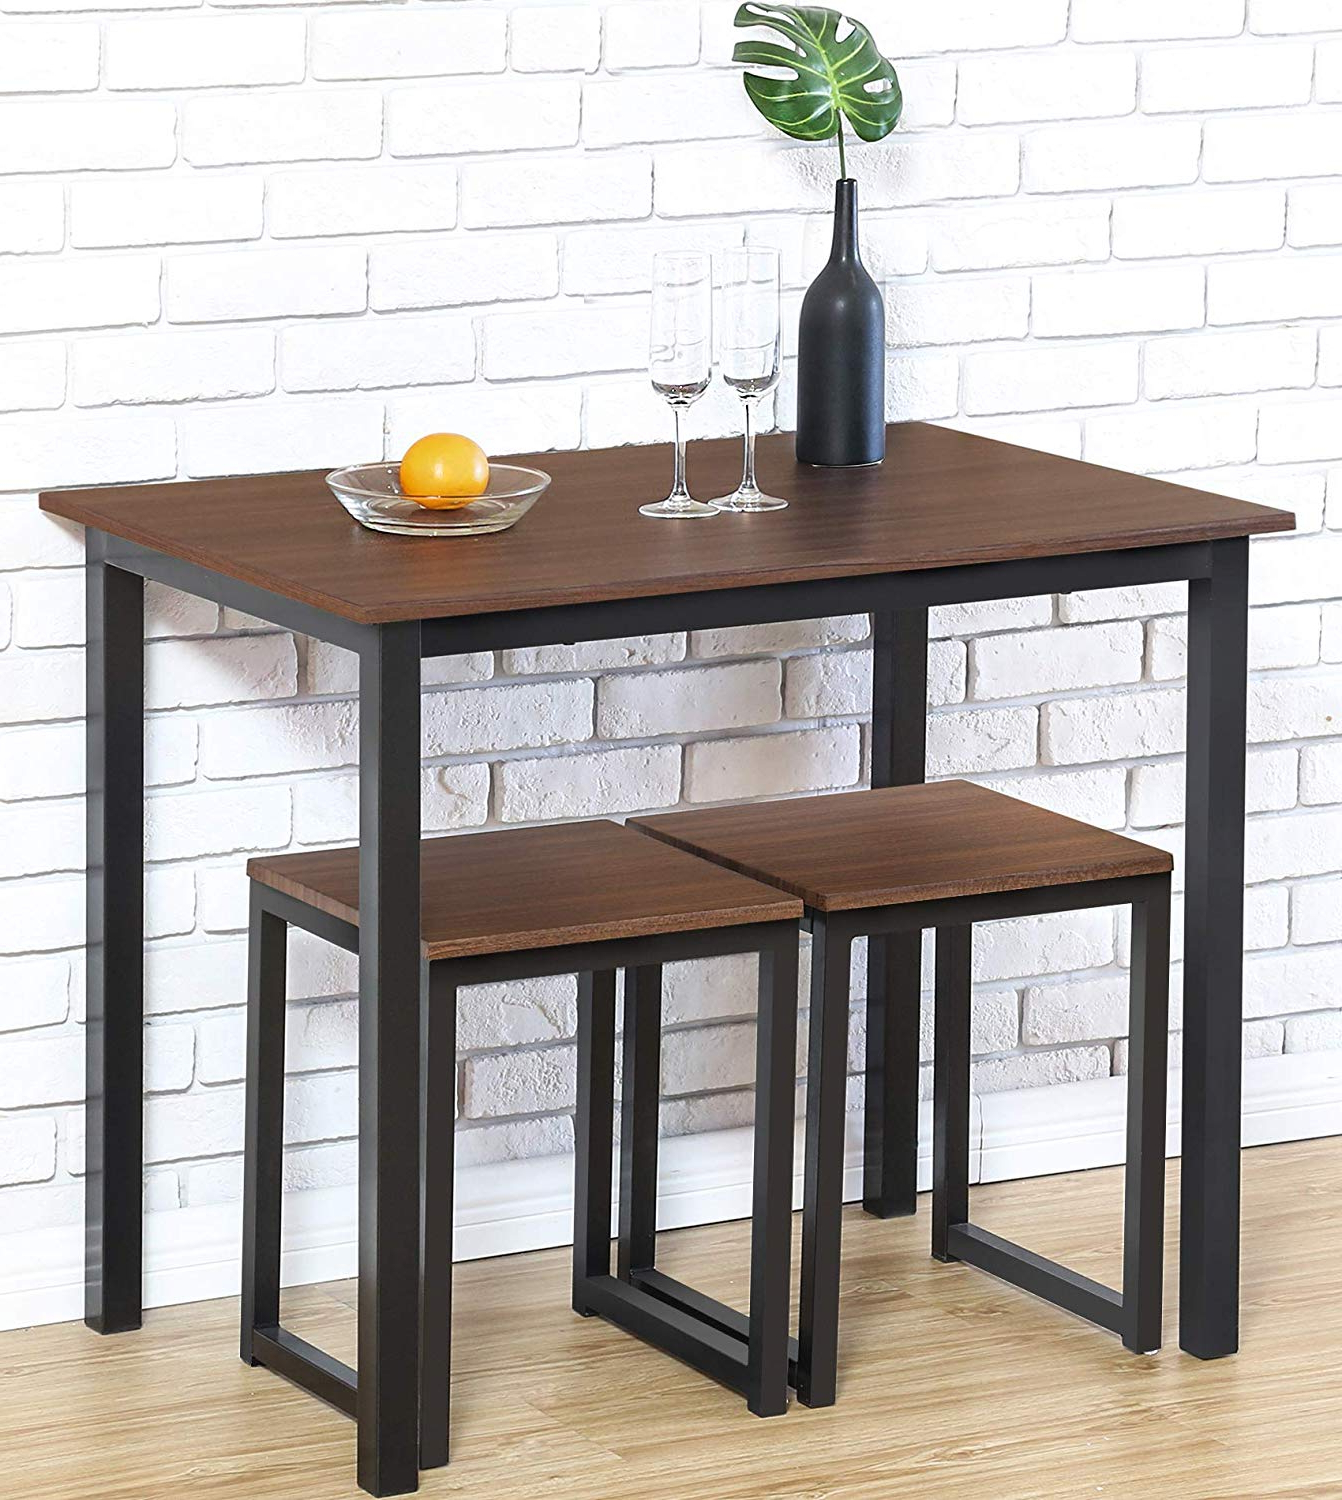 3 Piece Dining Sets With Current Amazon: Homury Modern Wood 3 Piece Dining Set Studio Collection (View 23 of 25)